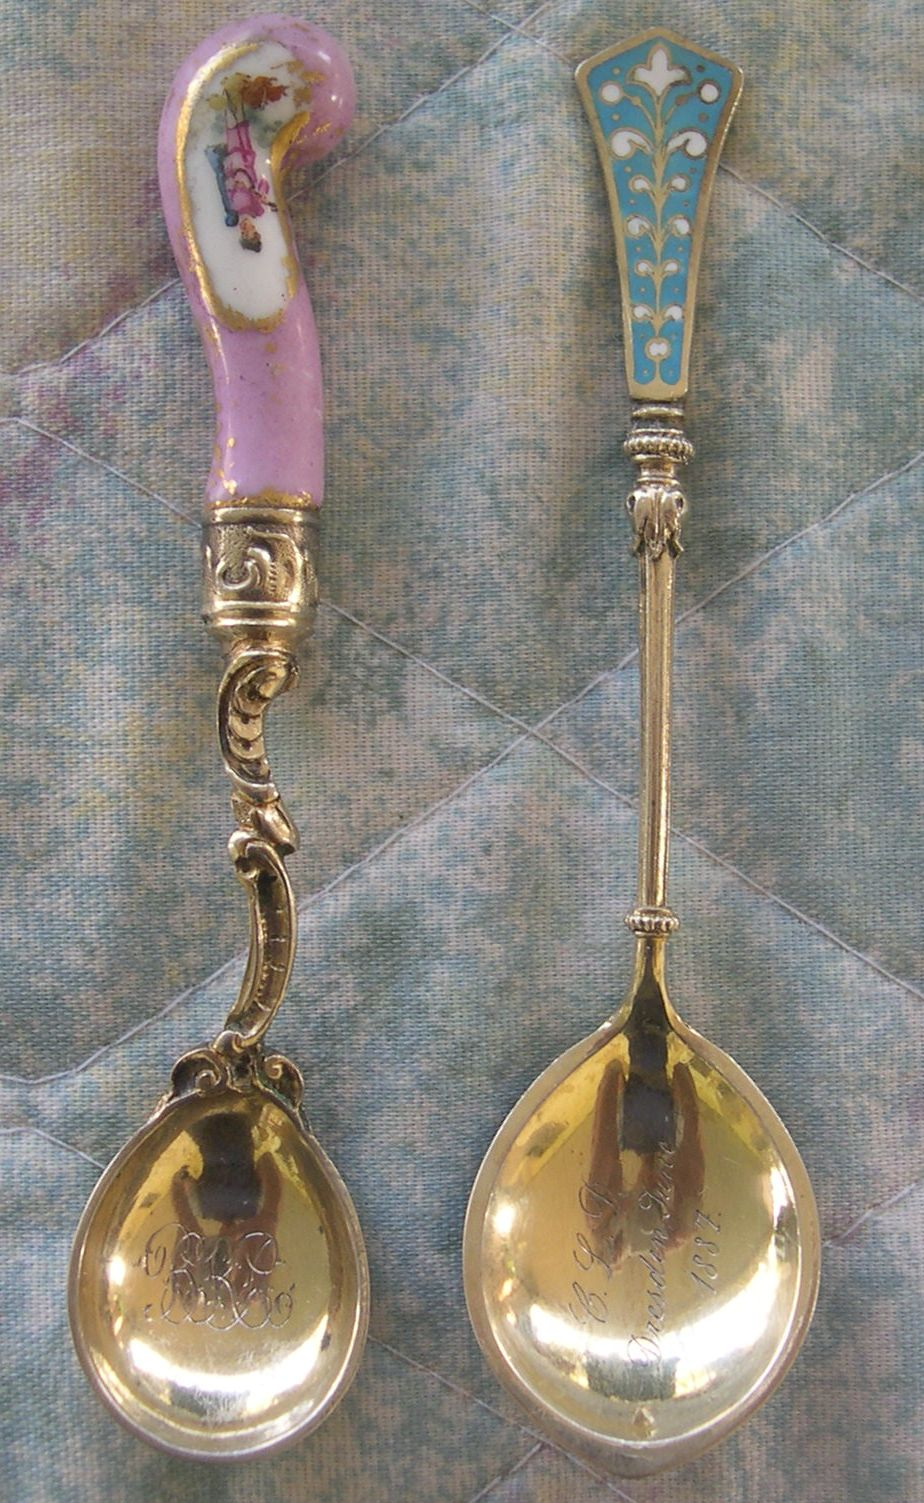 old german enamel spoons